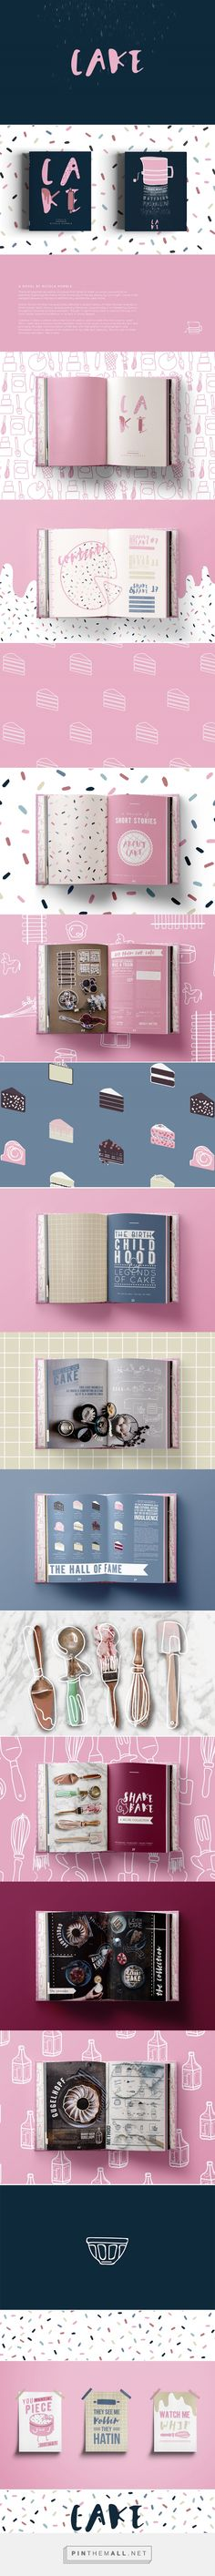 Cake Novel Redesign by Alanna V Walsh | Fivestar Branding Agency – Design and Branding Agency & Curated Inspiration Gallery #designinspiration #graphicdesign #fivestarbrandingagency